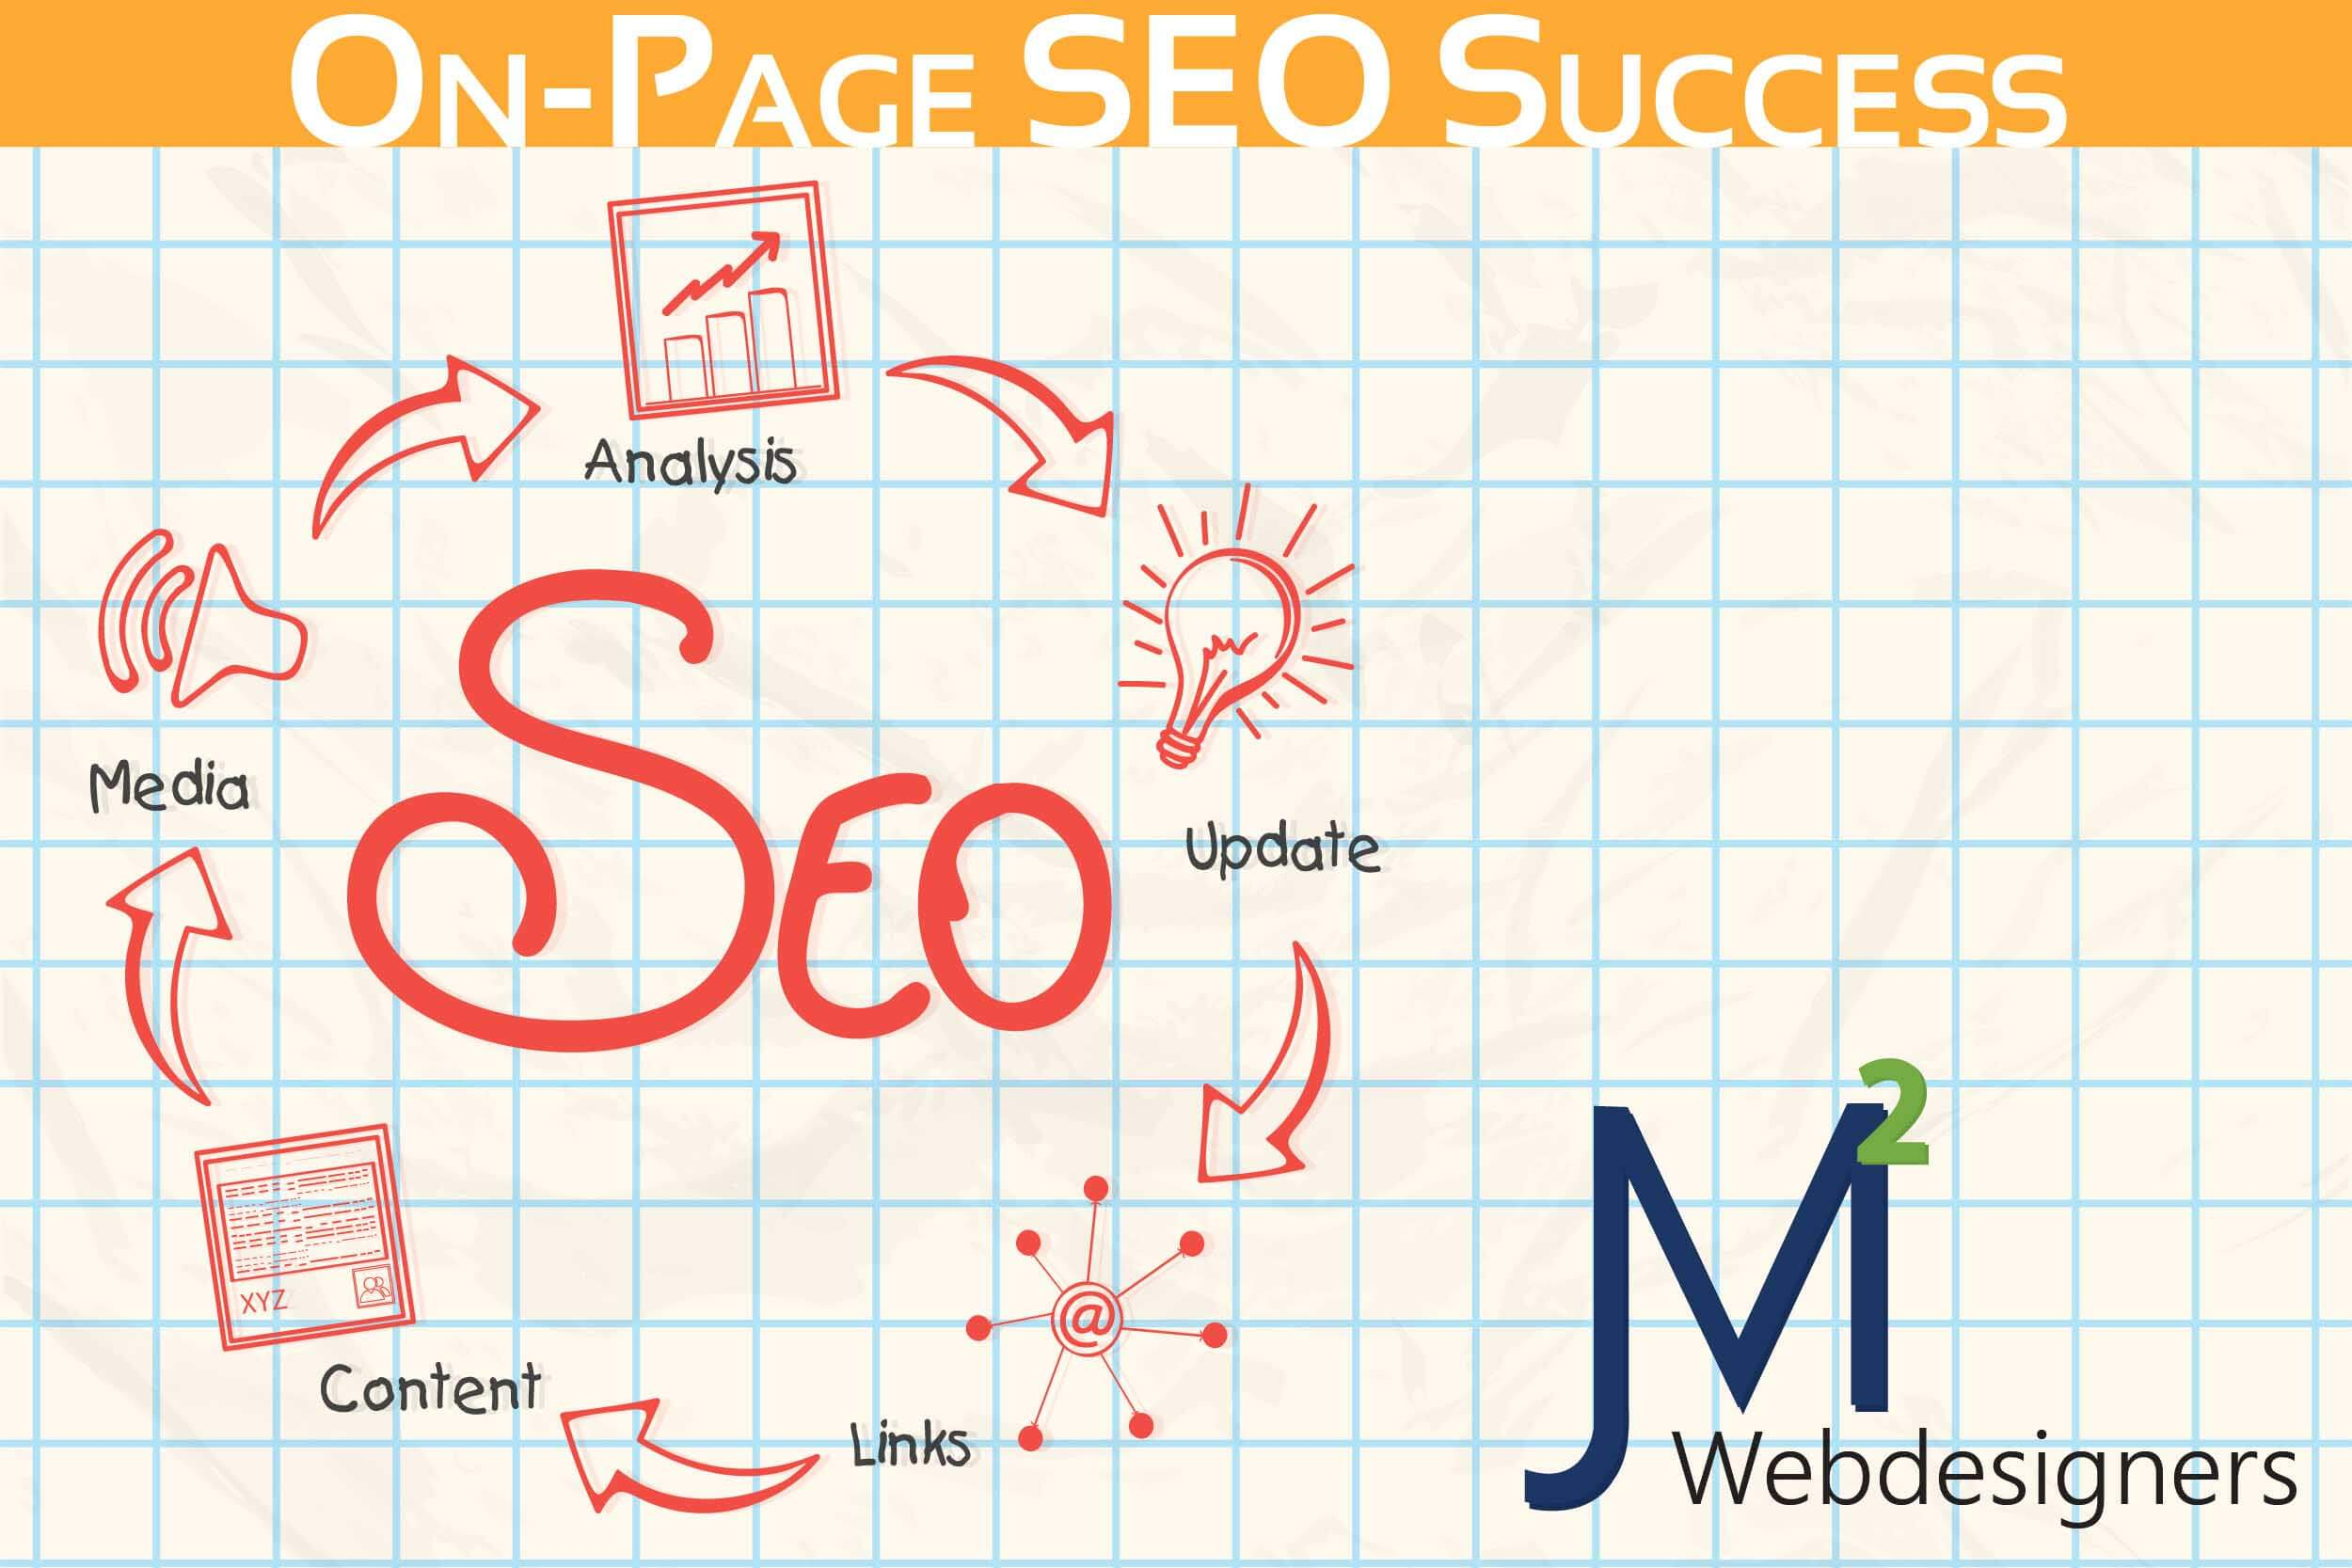 On-Page SEO Success